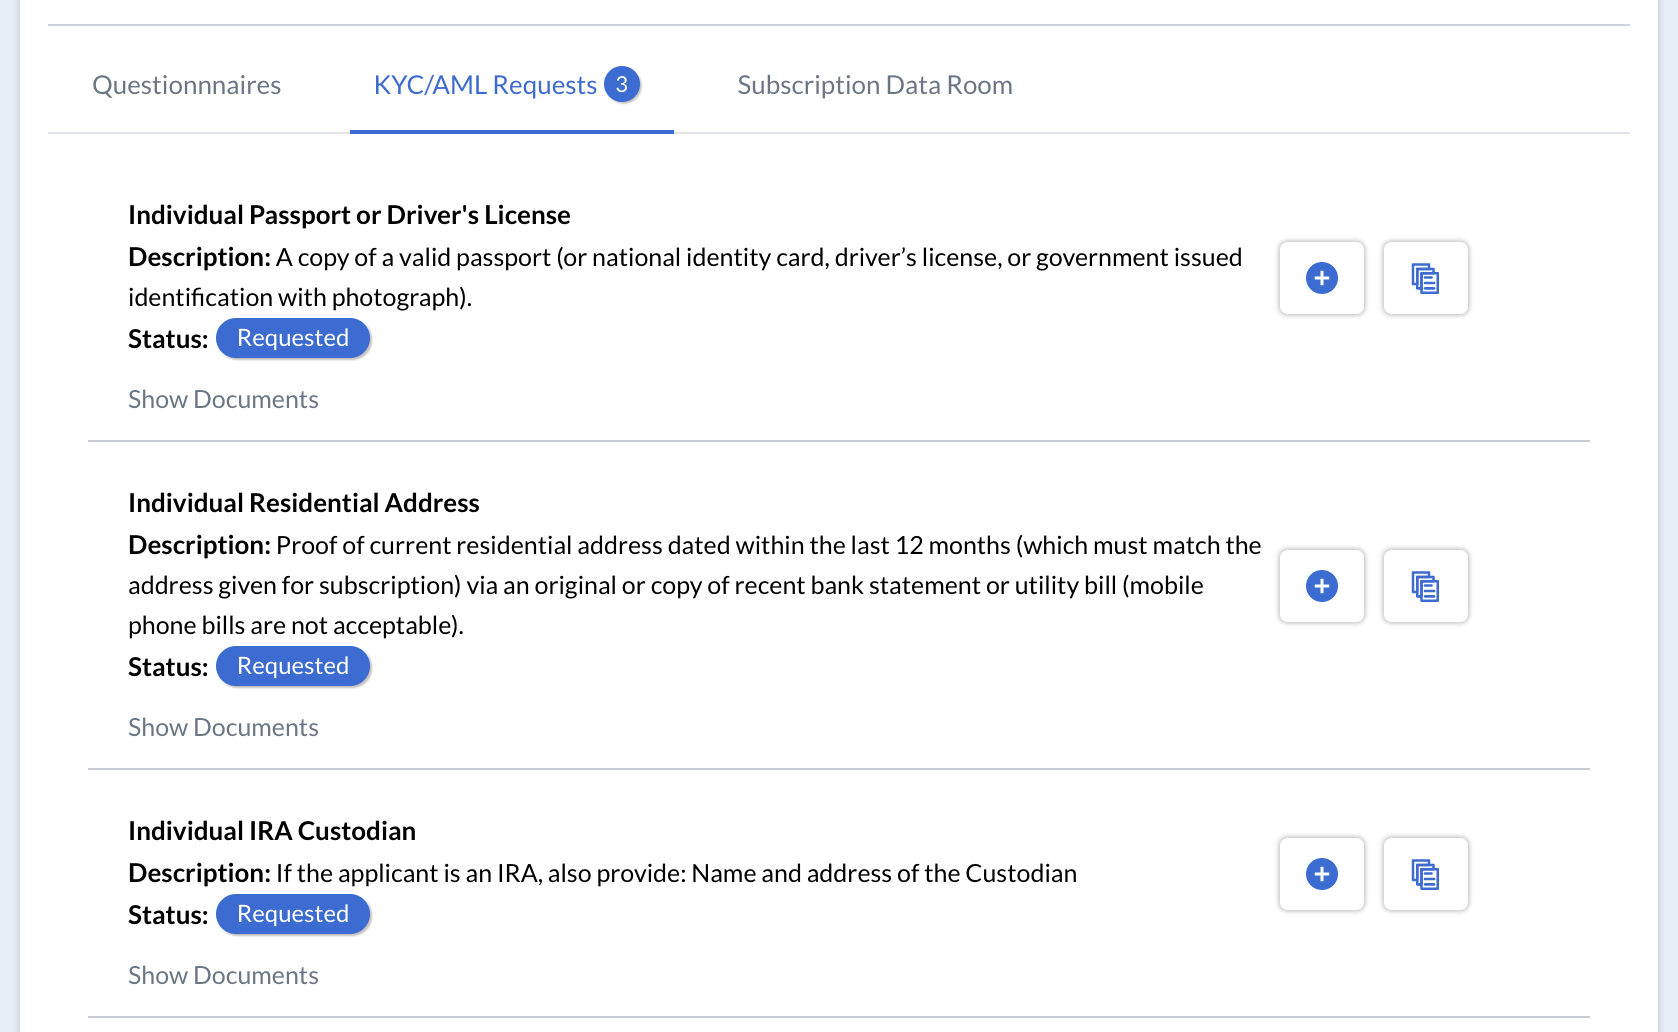 Investors securely upload their KYC and AML documents